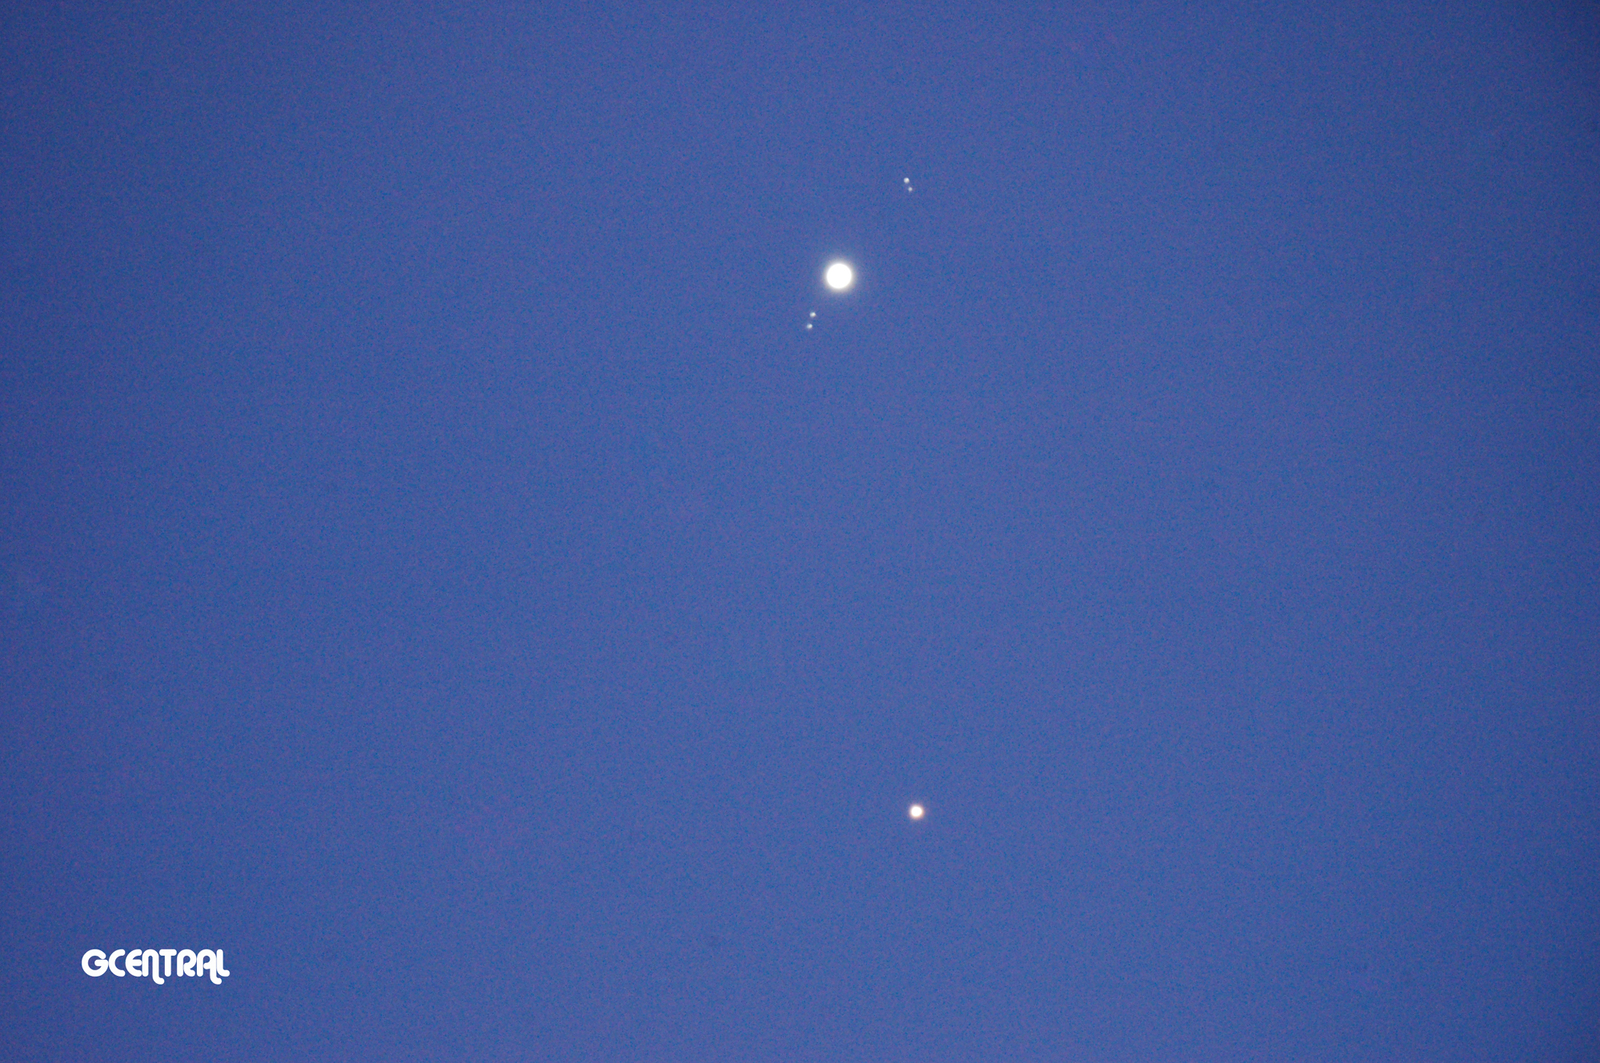 Jupiter & Mars (Prime Focus) January 7, 2018